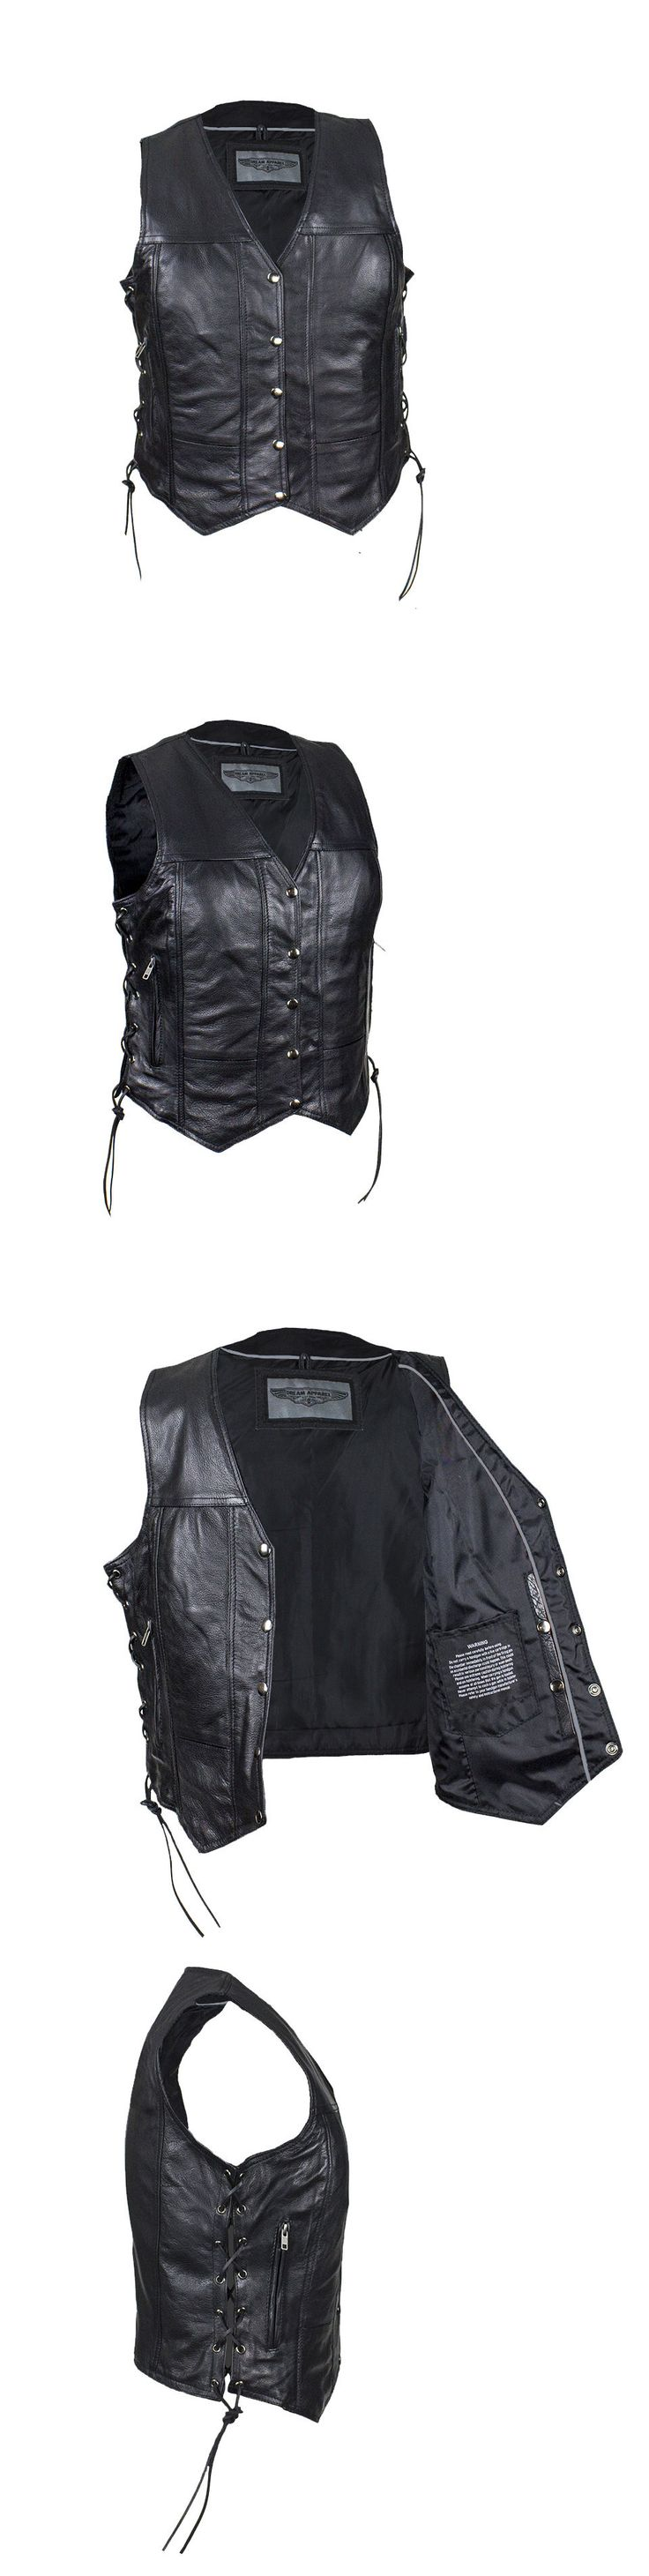 Vests 15775: Women S Leather Motorcycle Vest With Concealed Carry Pockets And Side Laces -> BUY IT NOW ONLY: $58.99 on eBay!